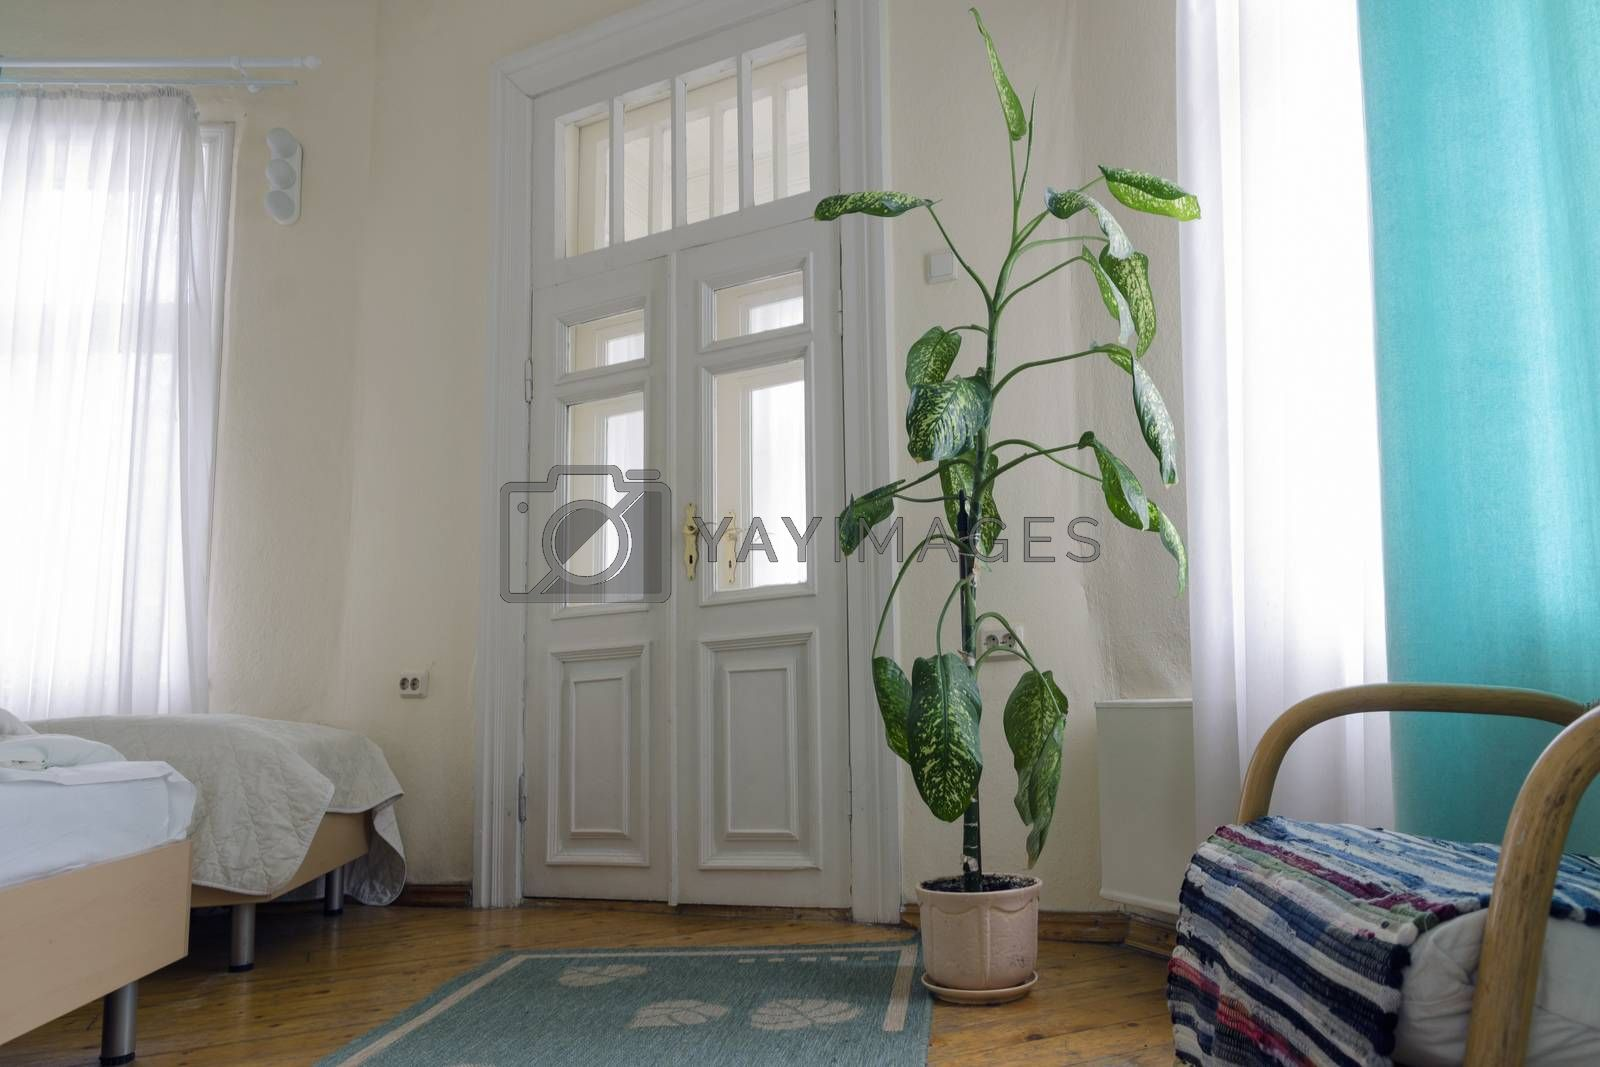 classic interior with big green plant in floor pot